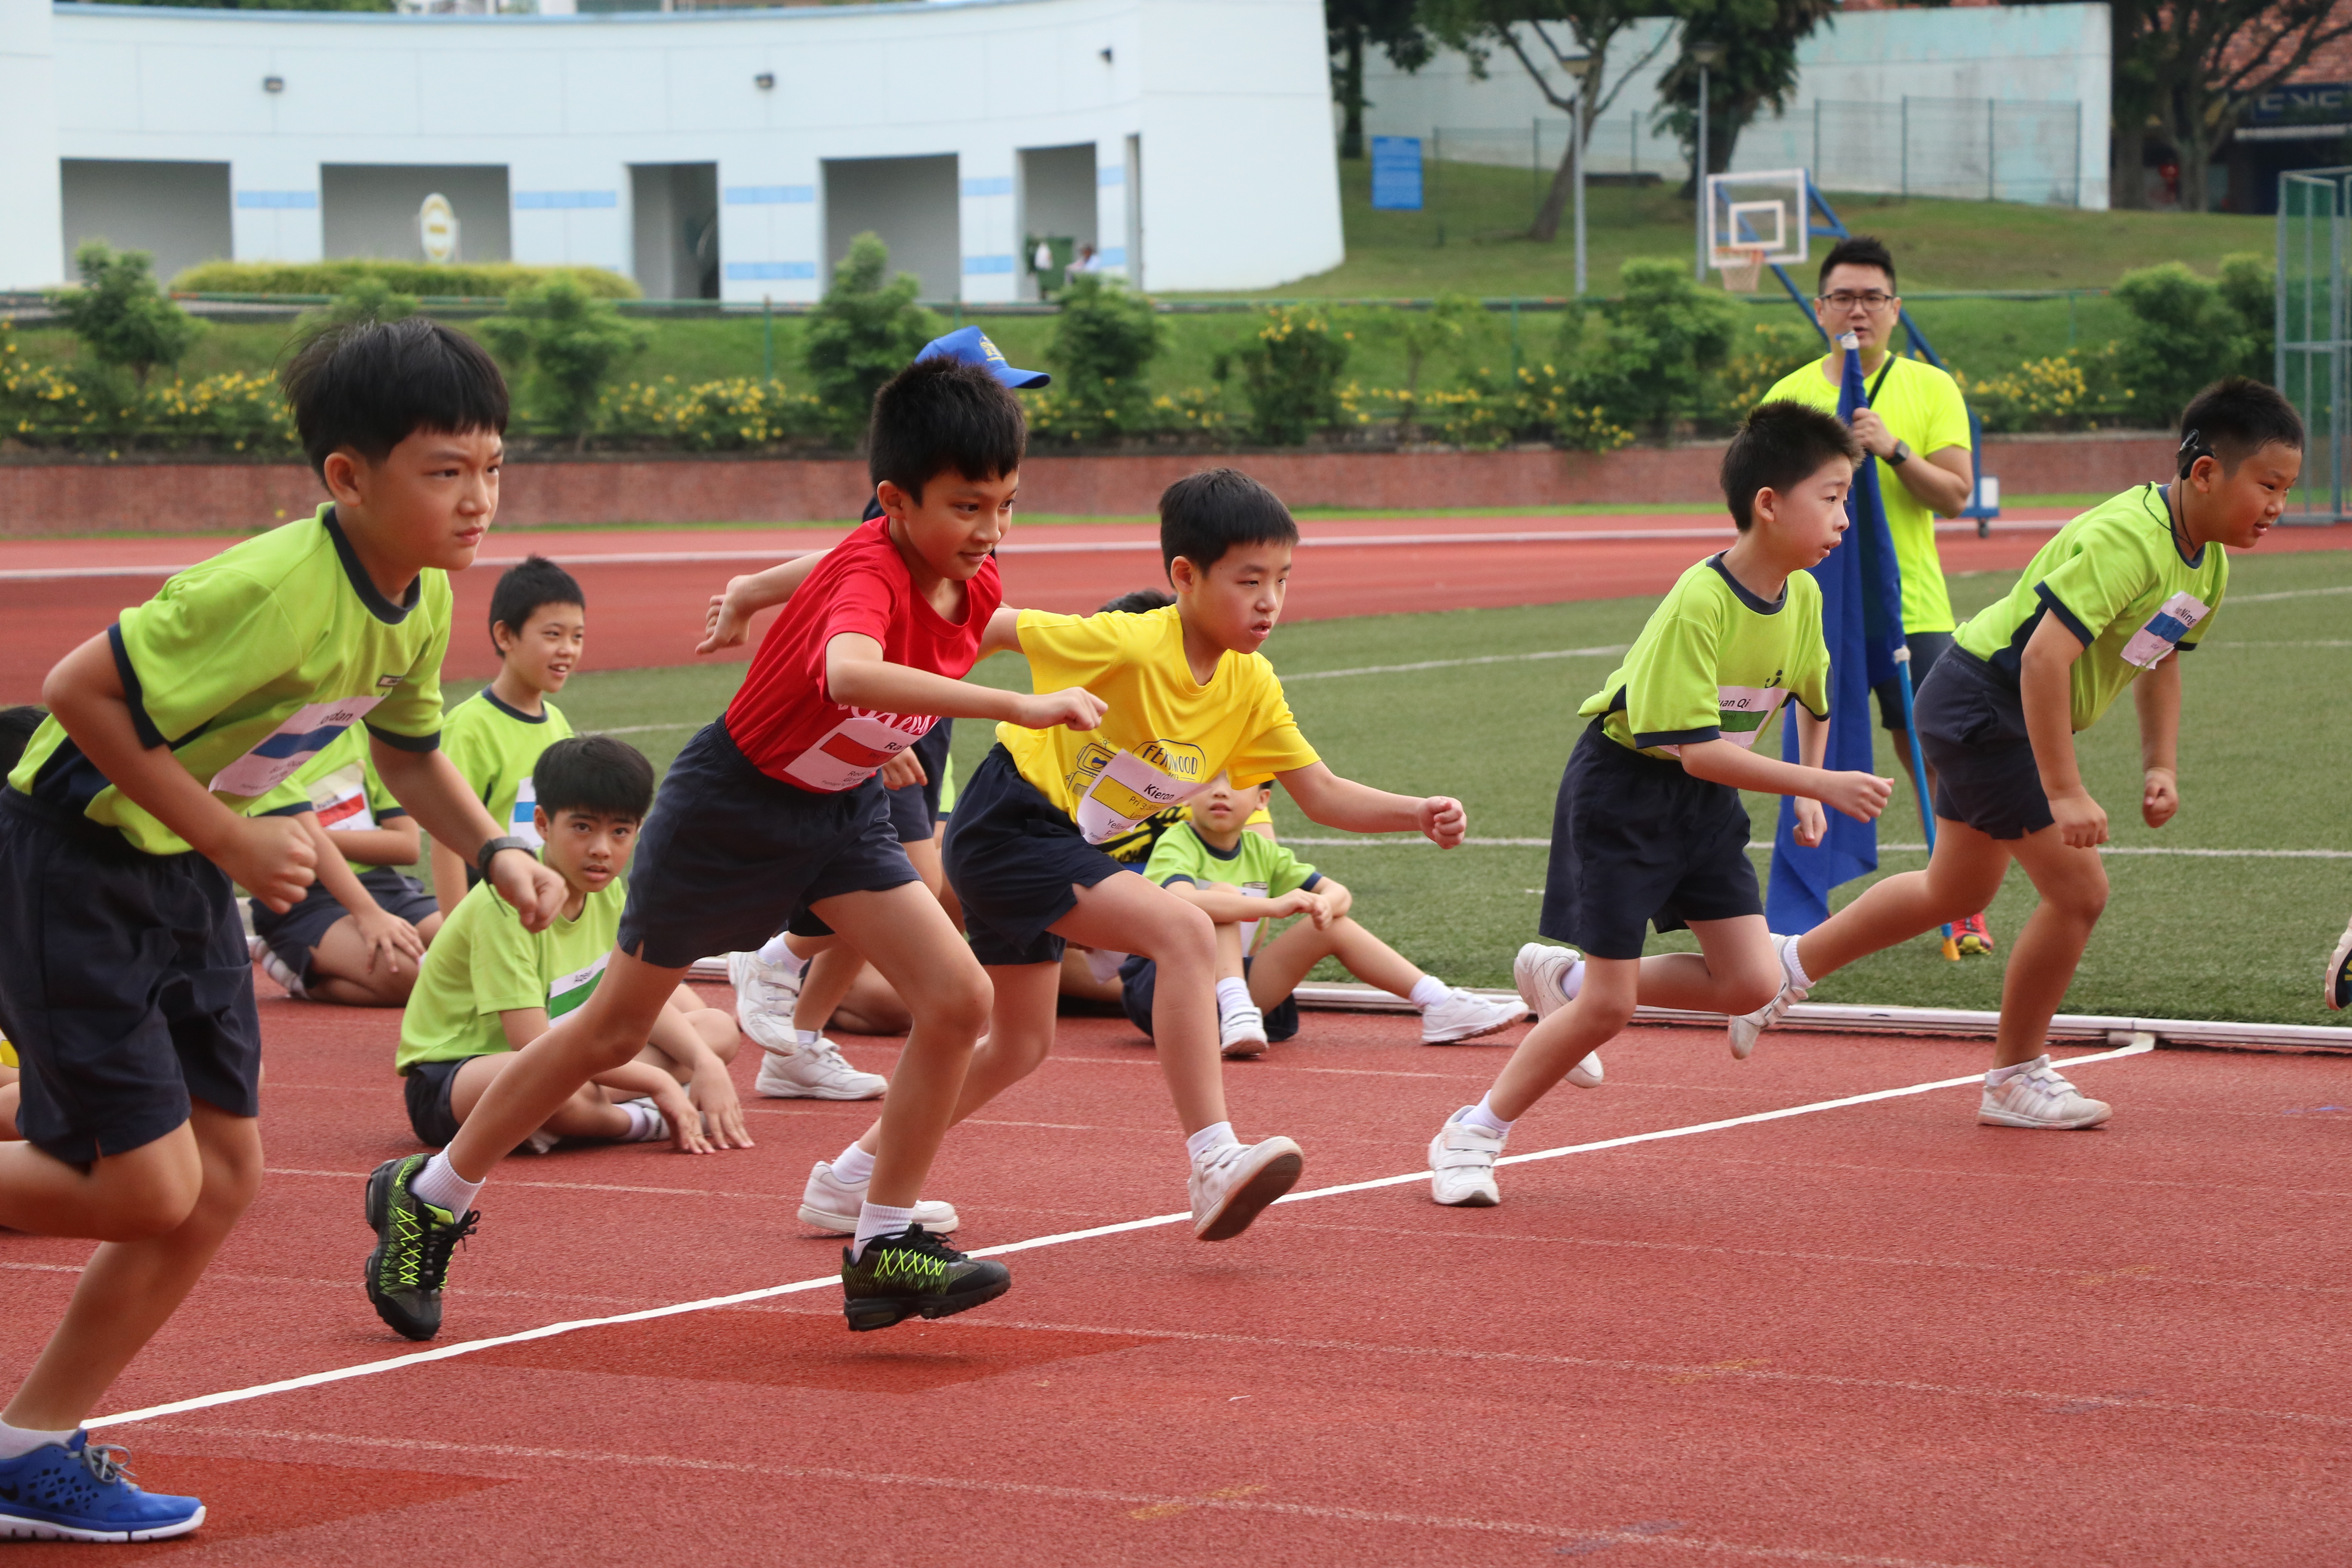 sports day in primary school Here is a series of activities that i planned for our school sports day the sports day is a continuous circuit of activities hope it may be of some help.